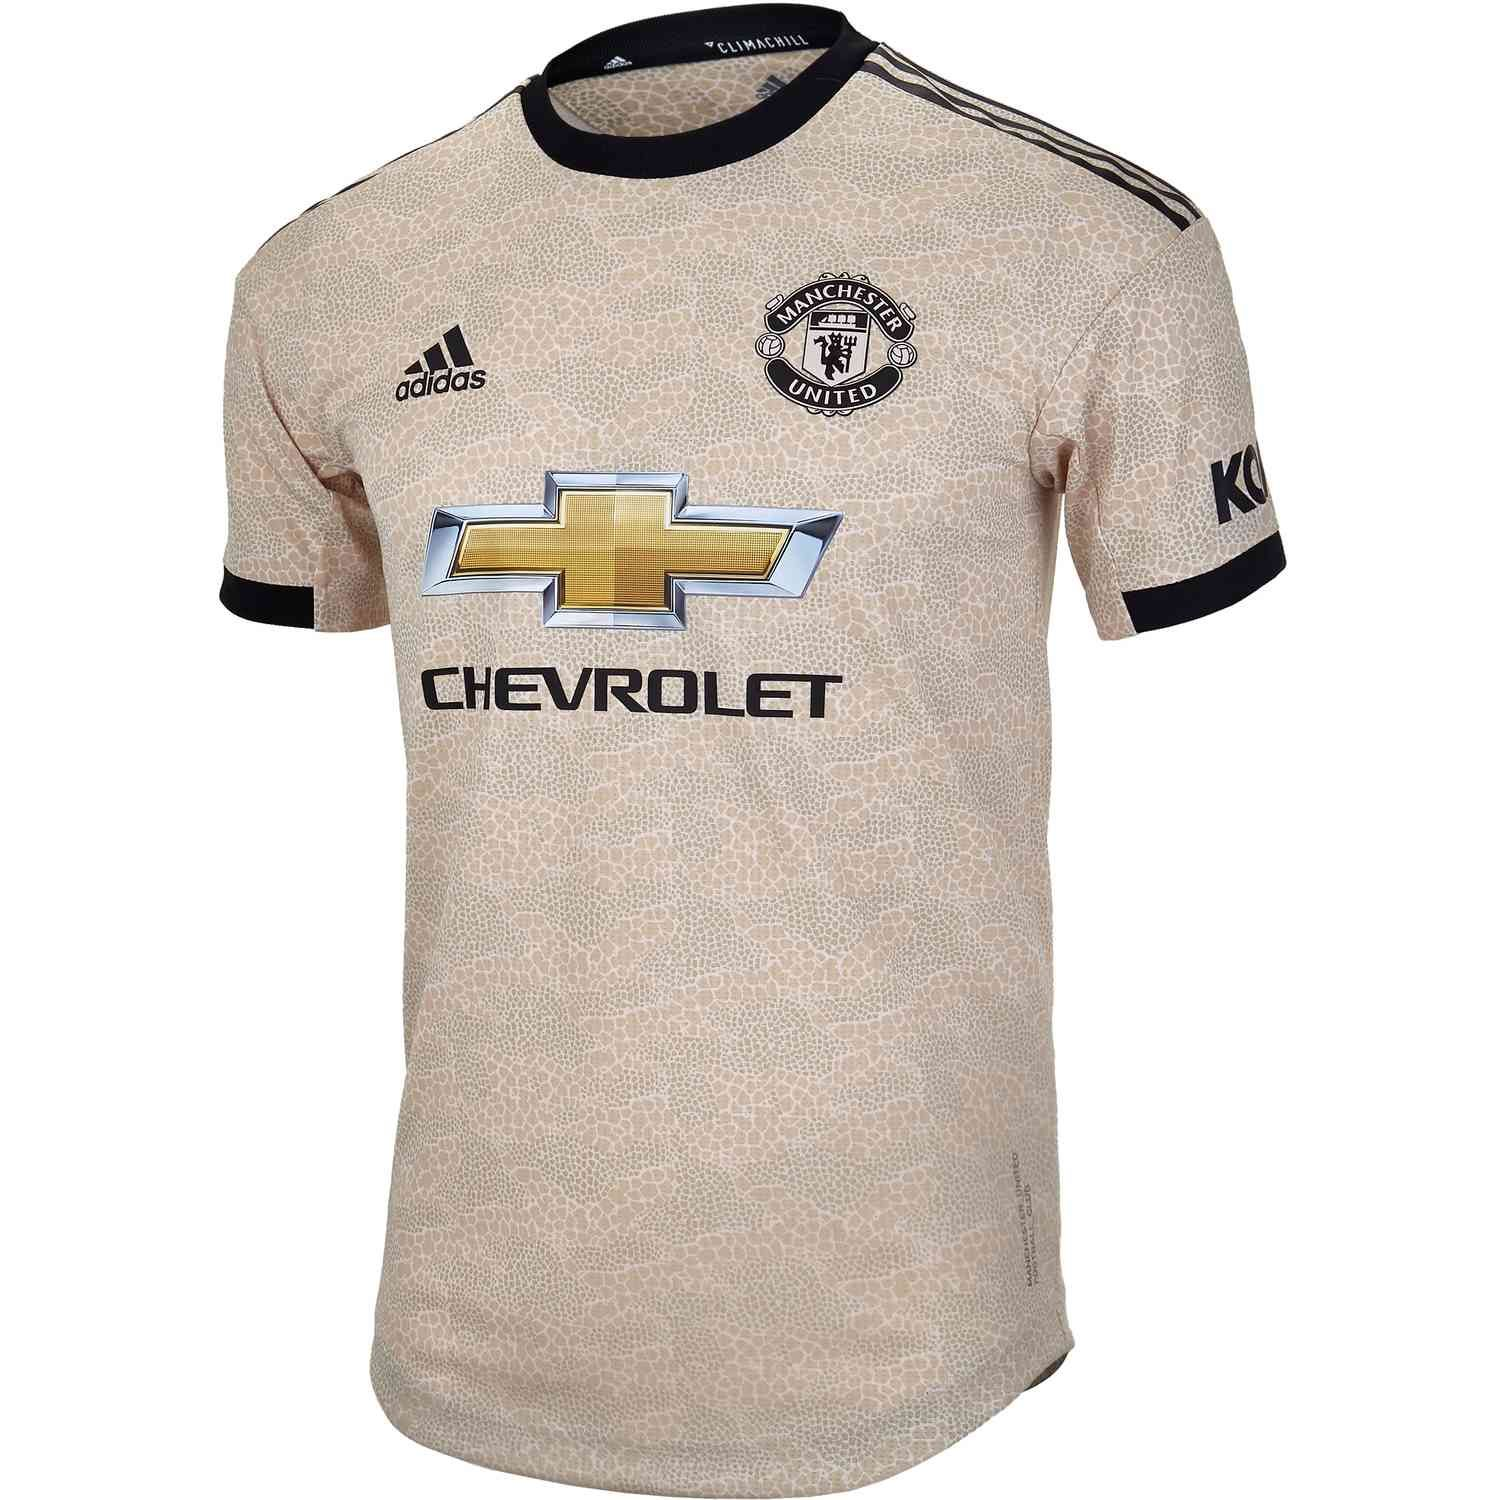 2019 20 Adidas Manchester United Away Authentic Jersey Soccerpro Manchester United Manchester United Away Kit Manchester United Soccer